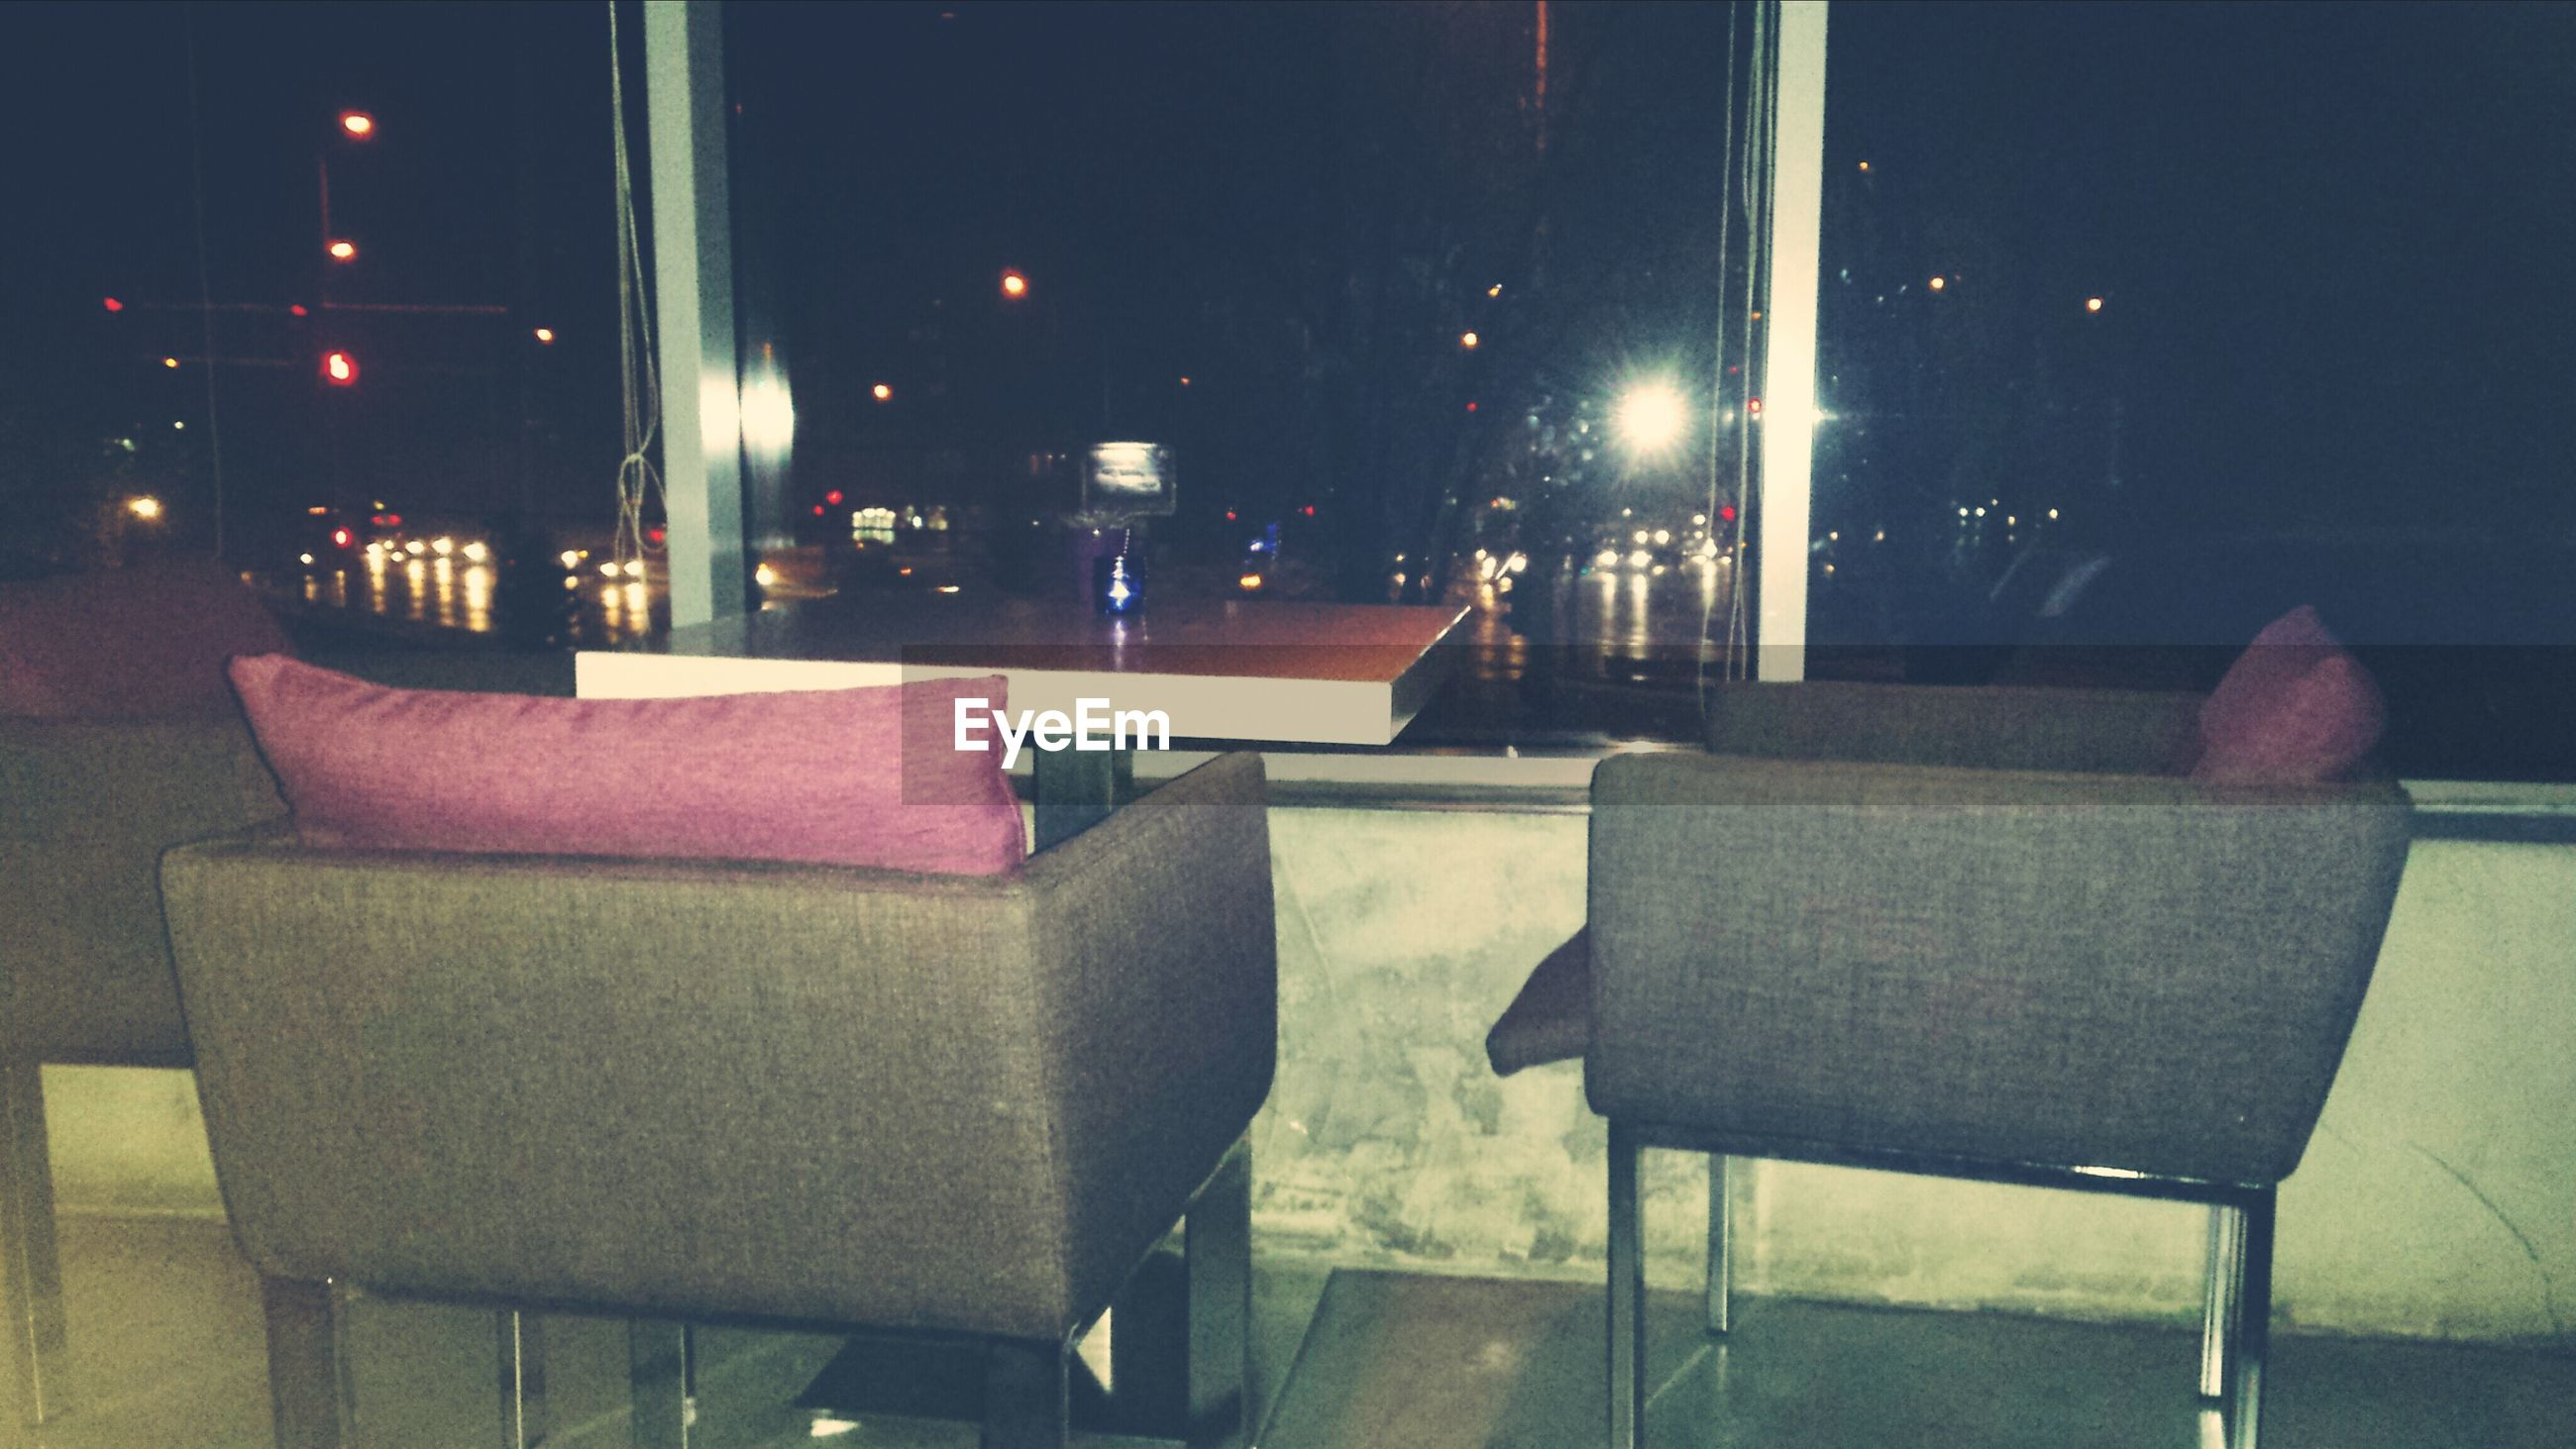 chair, illuminated, table, empty, lighting equipment, night, absence, architecture, built structure, building exterior, street light, restaurant, indoors, window, bench, seat, city, house, glass - material, no people